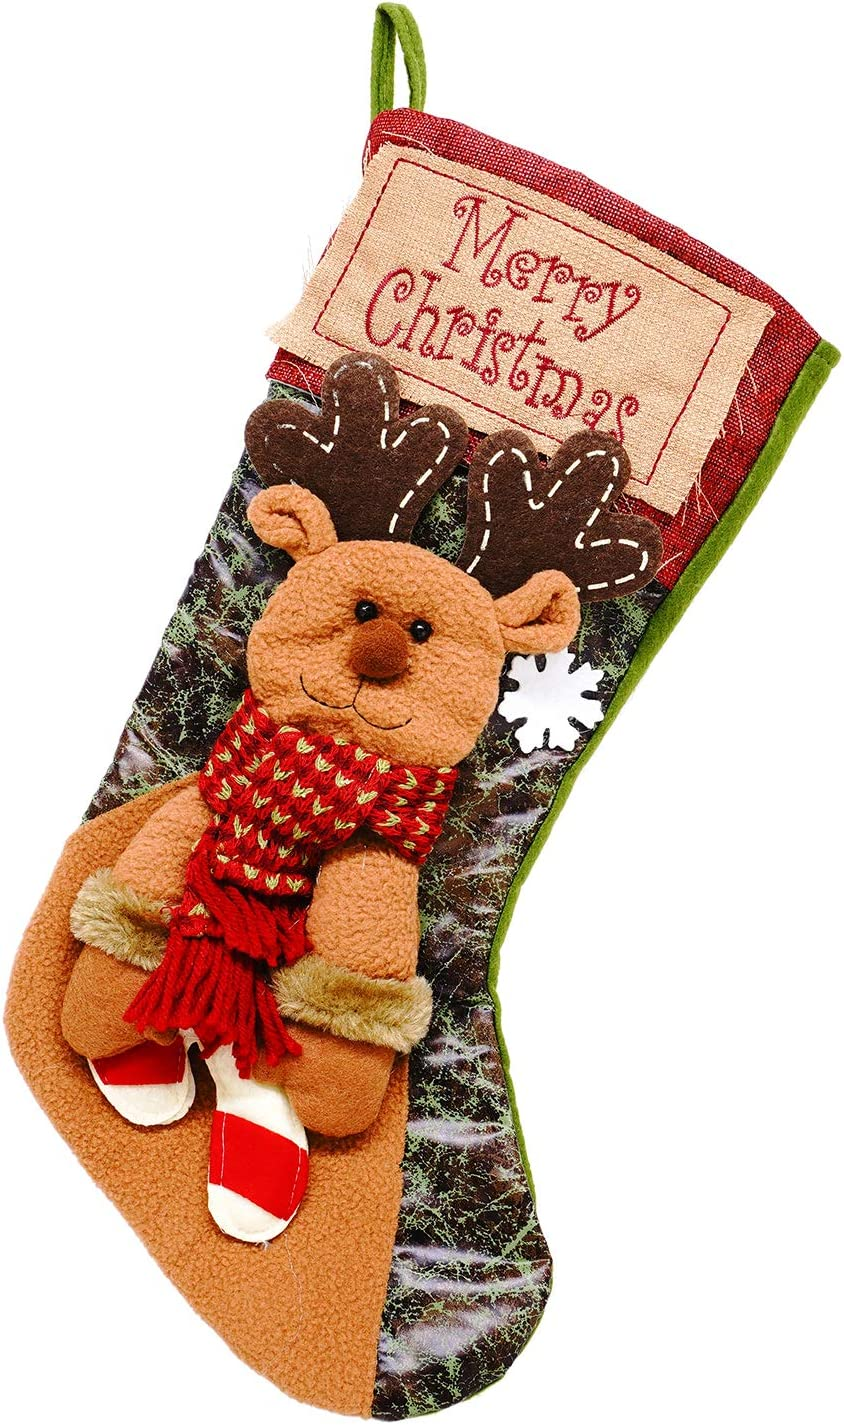 Christmas Stockings Personalized, MoBeauty 18Inch Fireplace Hanging Stocking for Xmas Decoration Tree Ornament Holiday Party Seasonal Decor - Reindeer